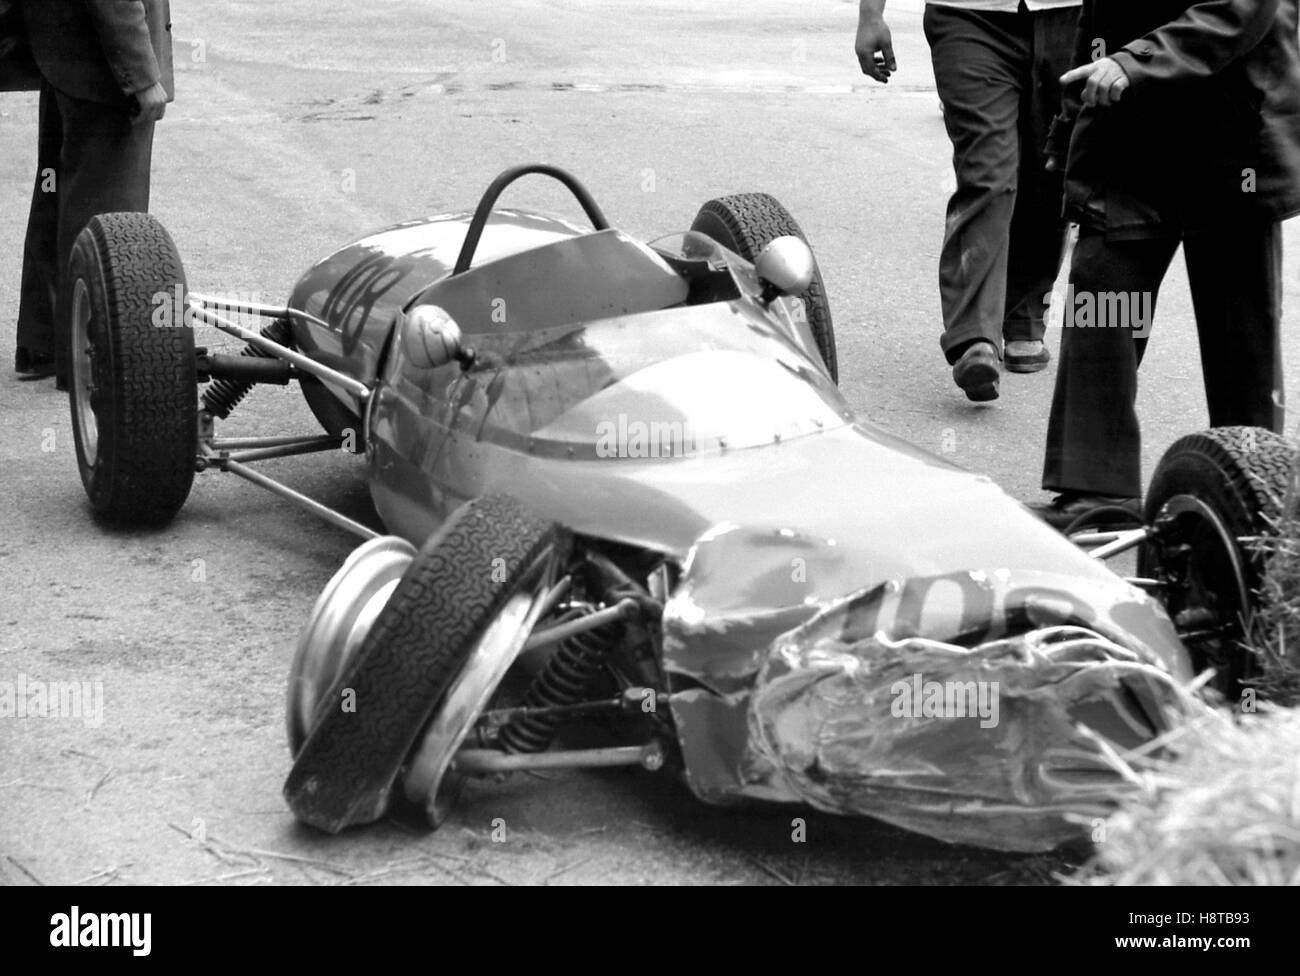 1962 MONACO GP FJ CRASHED LOTUS 22 - Stock Image